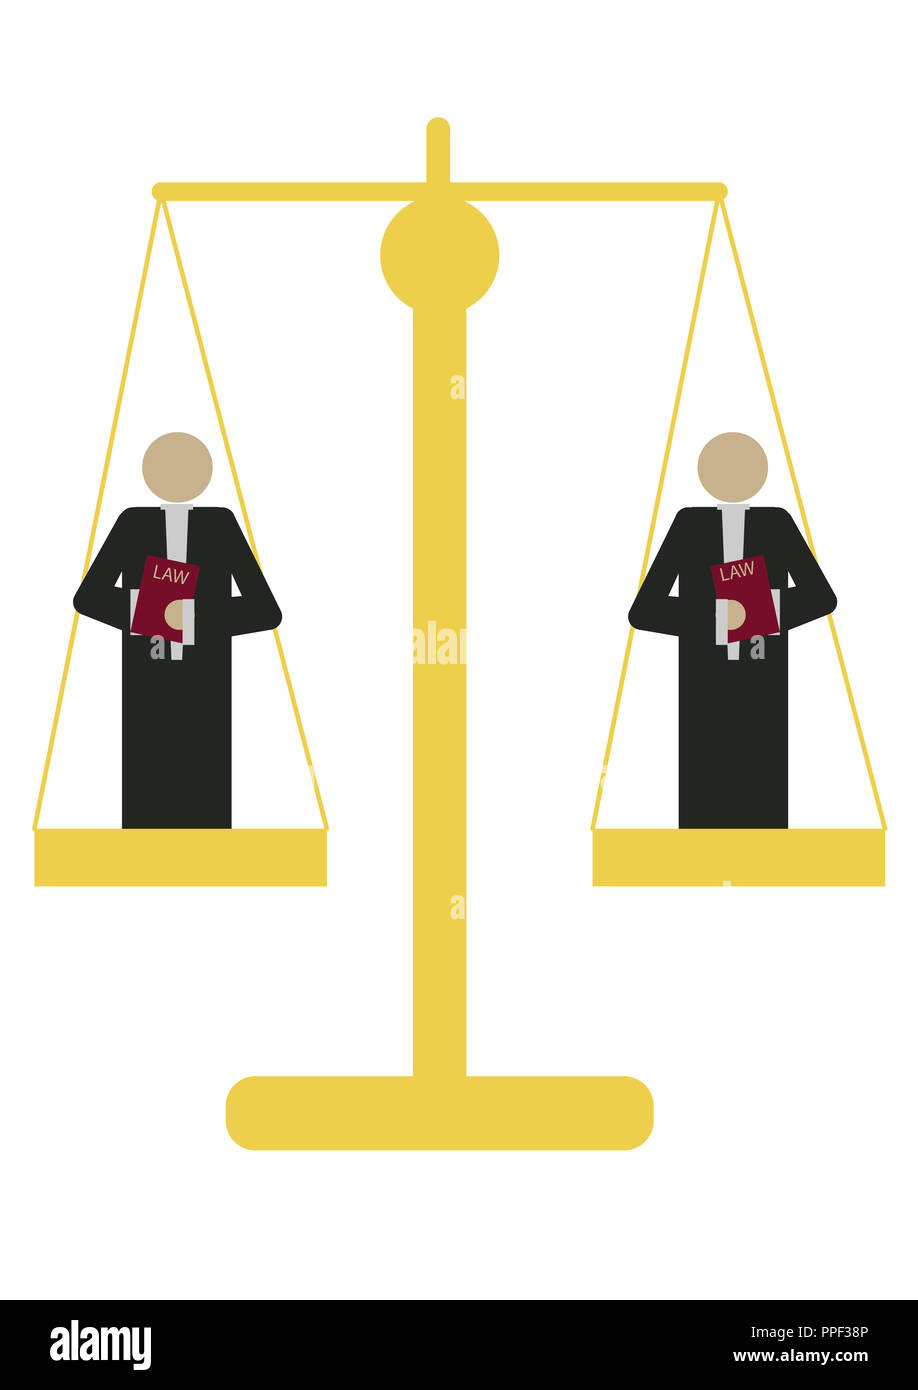 lawyers stand on a scale representing the fairness of the law - Stock Image